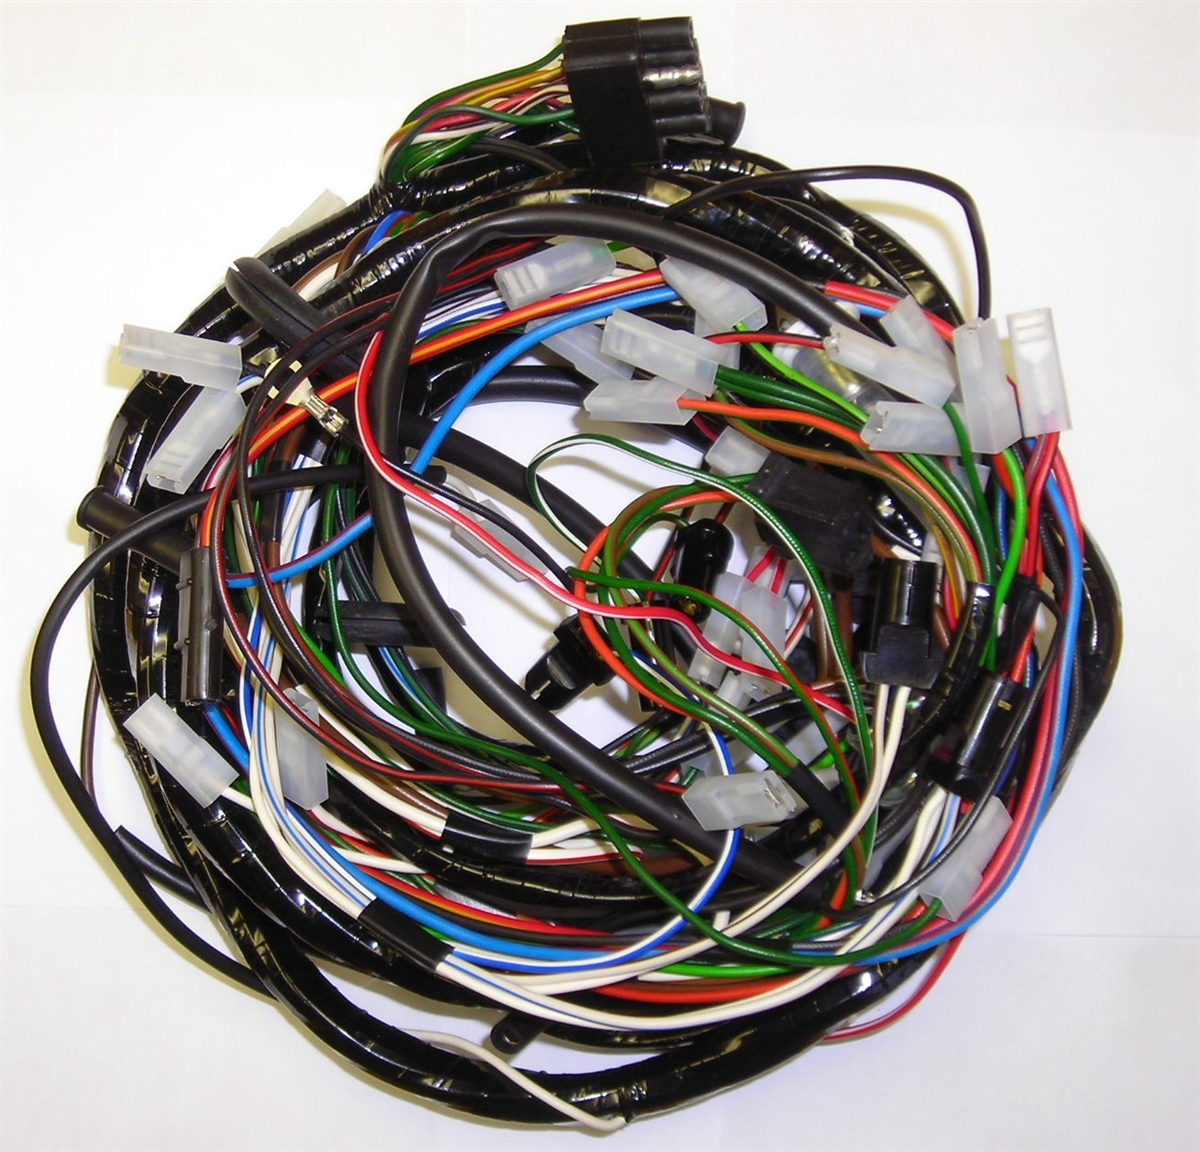 land rover series 3 main wiring harness rh britishwiring com land rover trailer wiring harness land rover lr4 trailer wiring harness